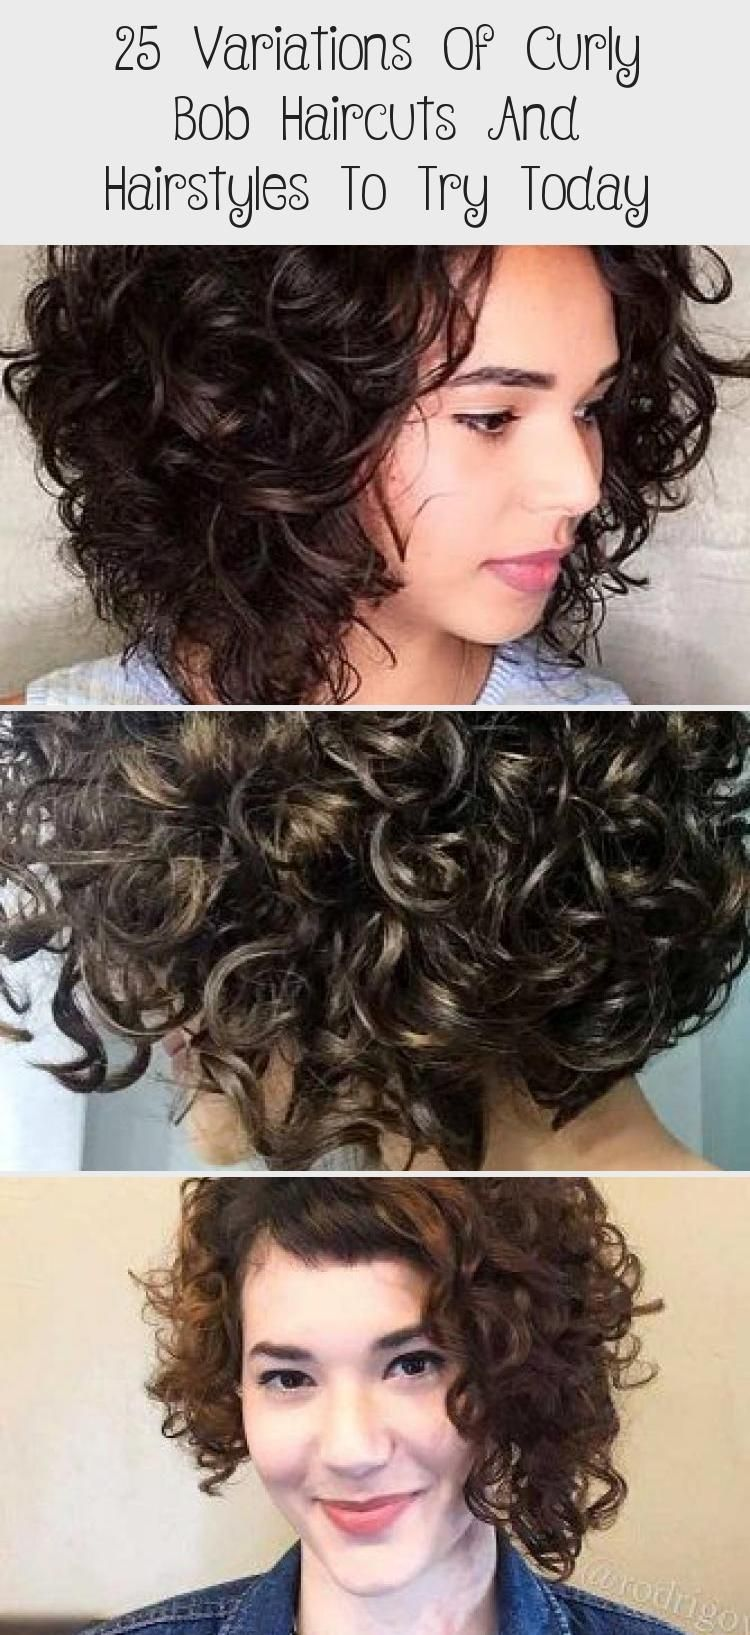 11 Variations Of Curly Bob Haircuts And Hairstyles To Try Today